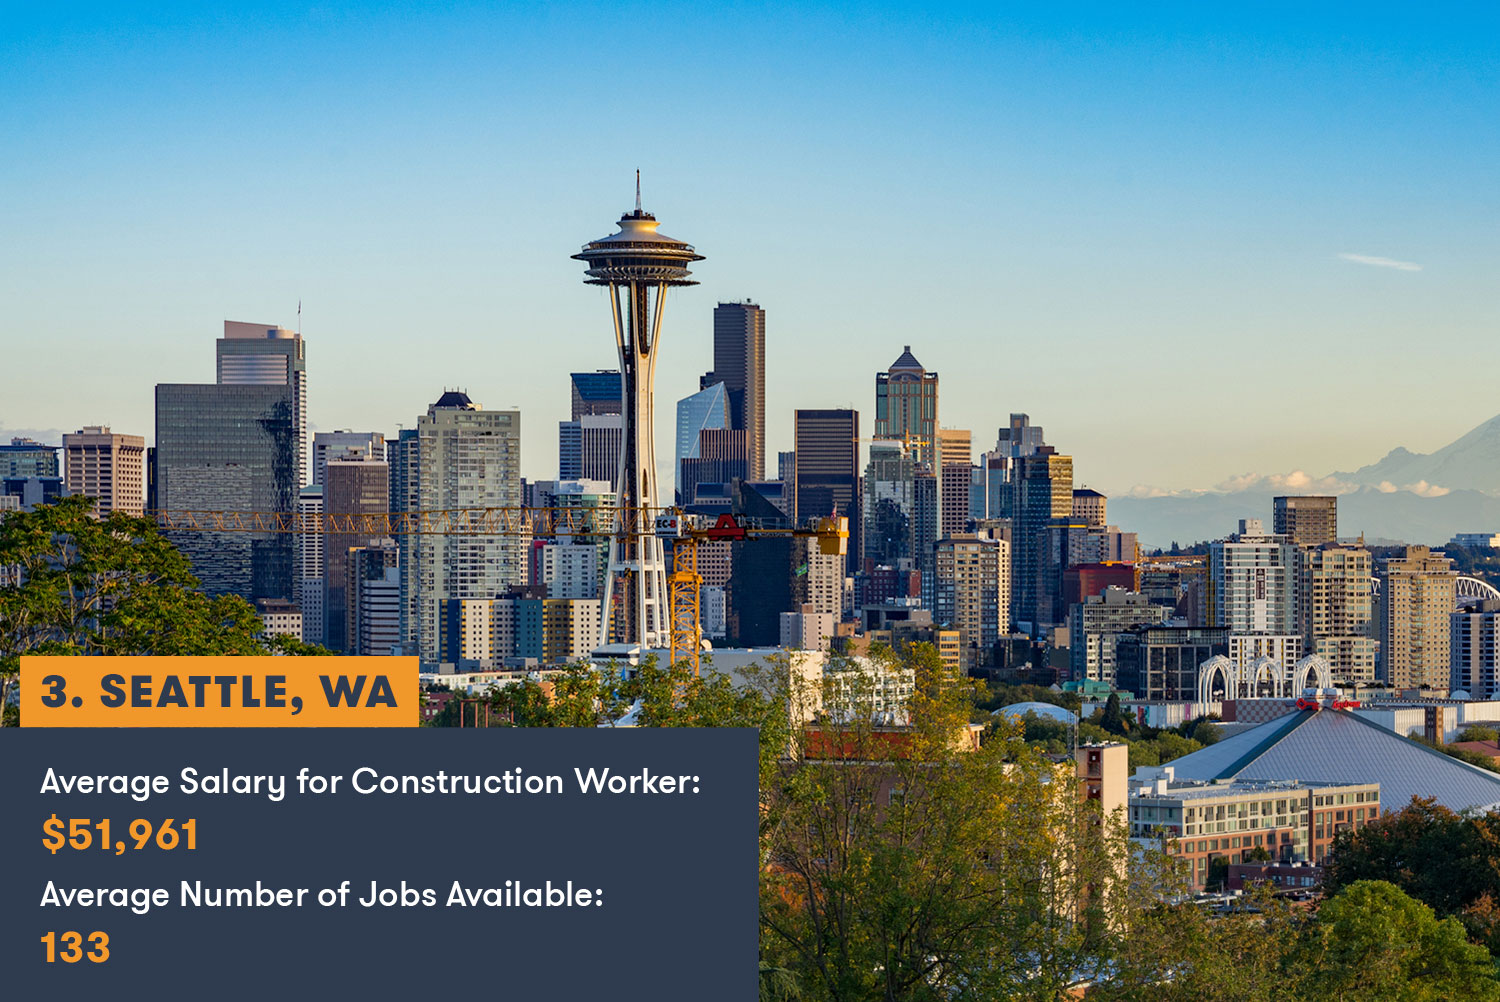 Seattle Construction Jobs and Salary